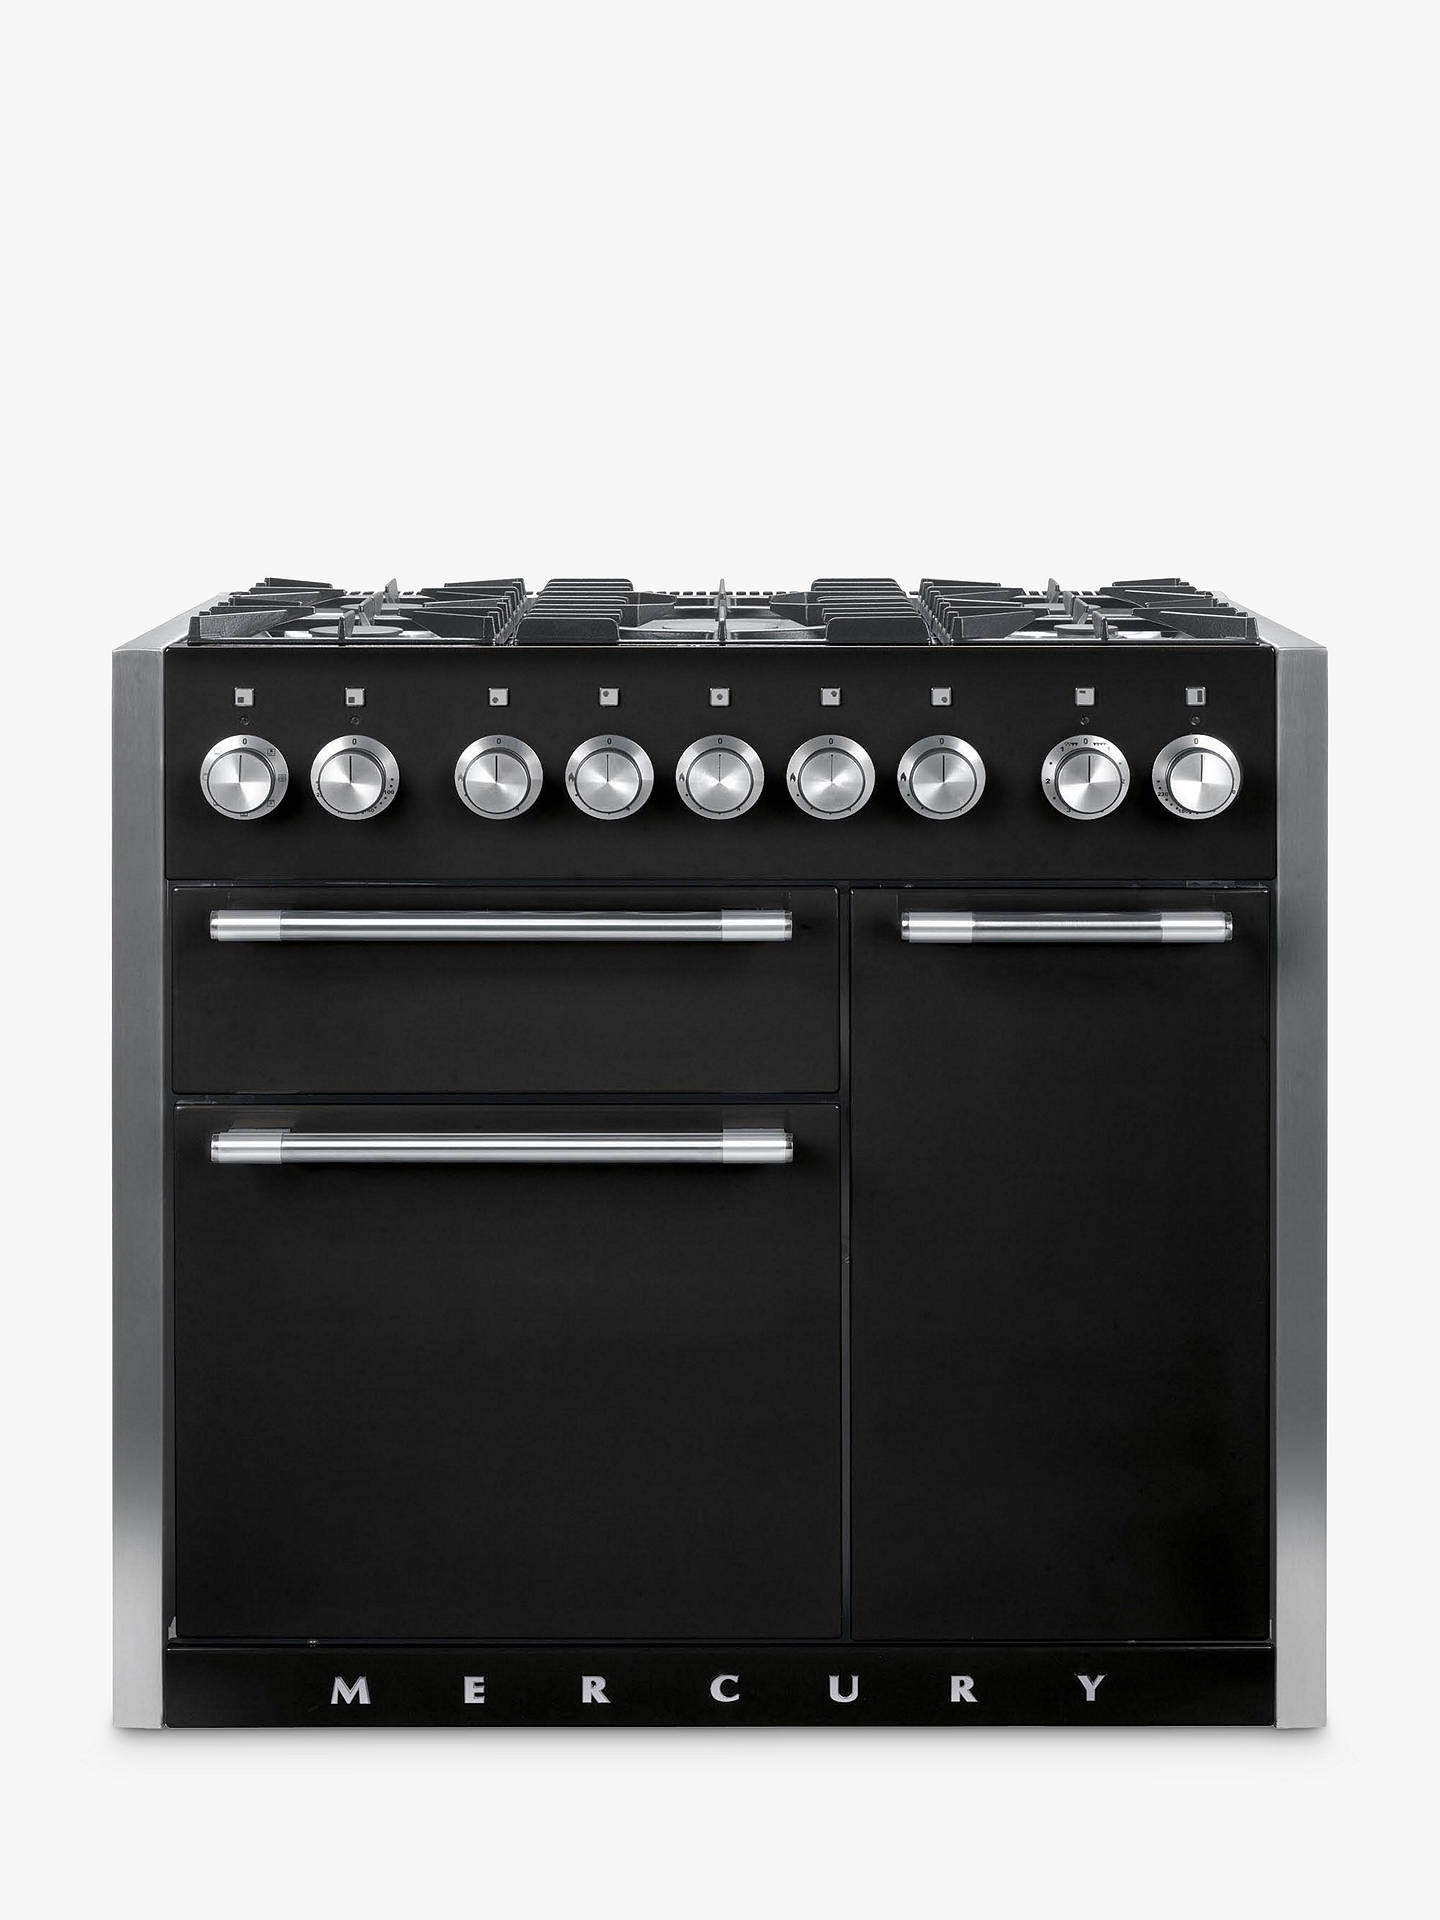 Buy Mercury 1000 Dual Fuel Range Cooker, Black Online at johnlewis.com